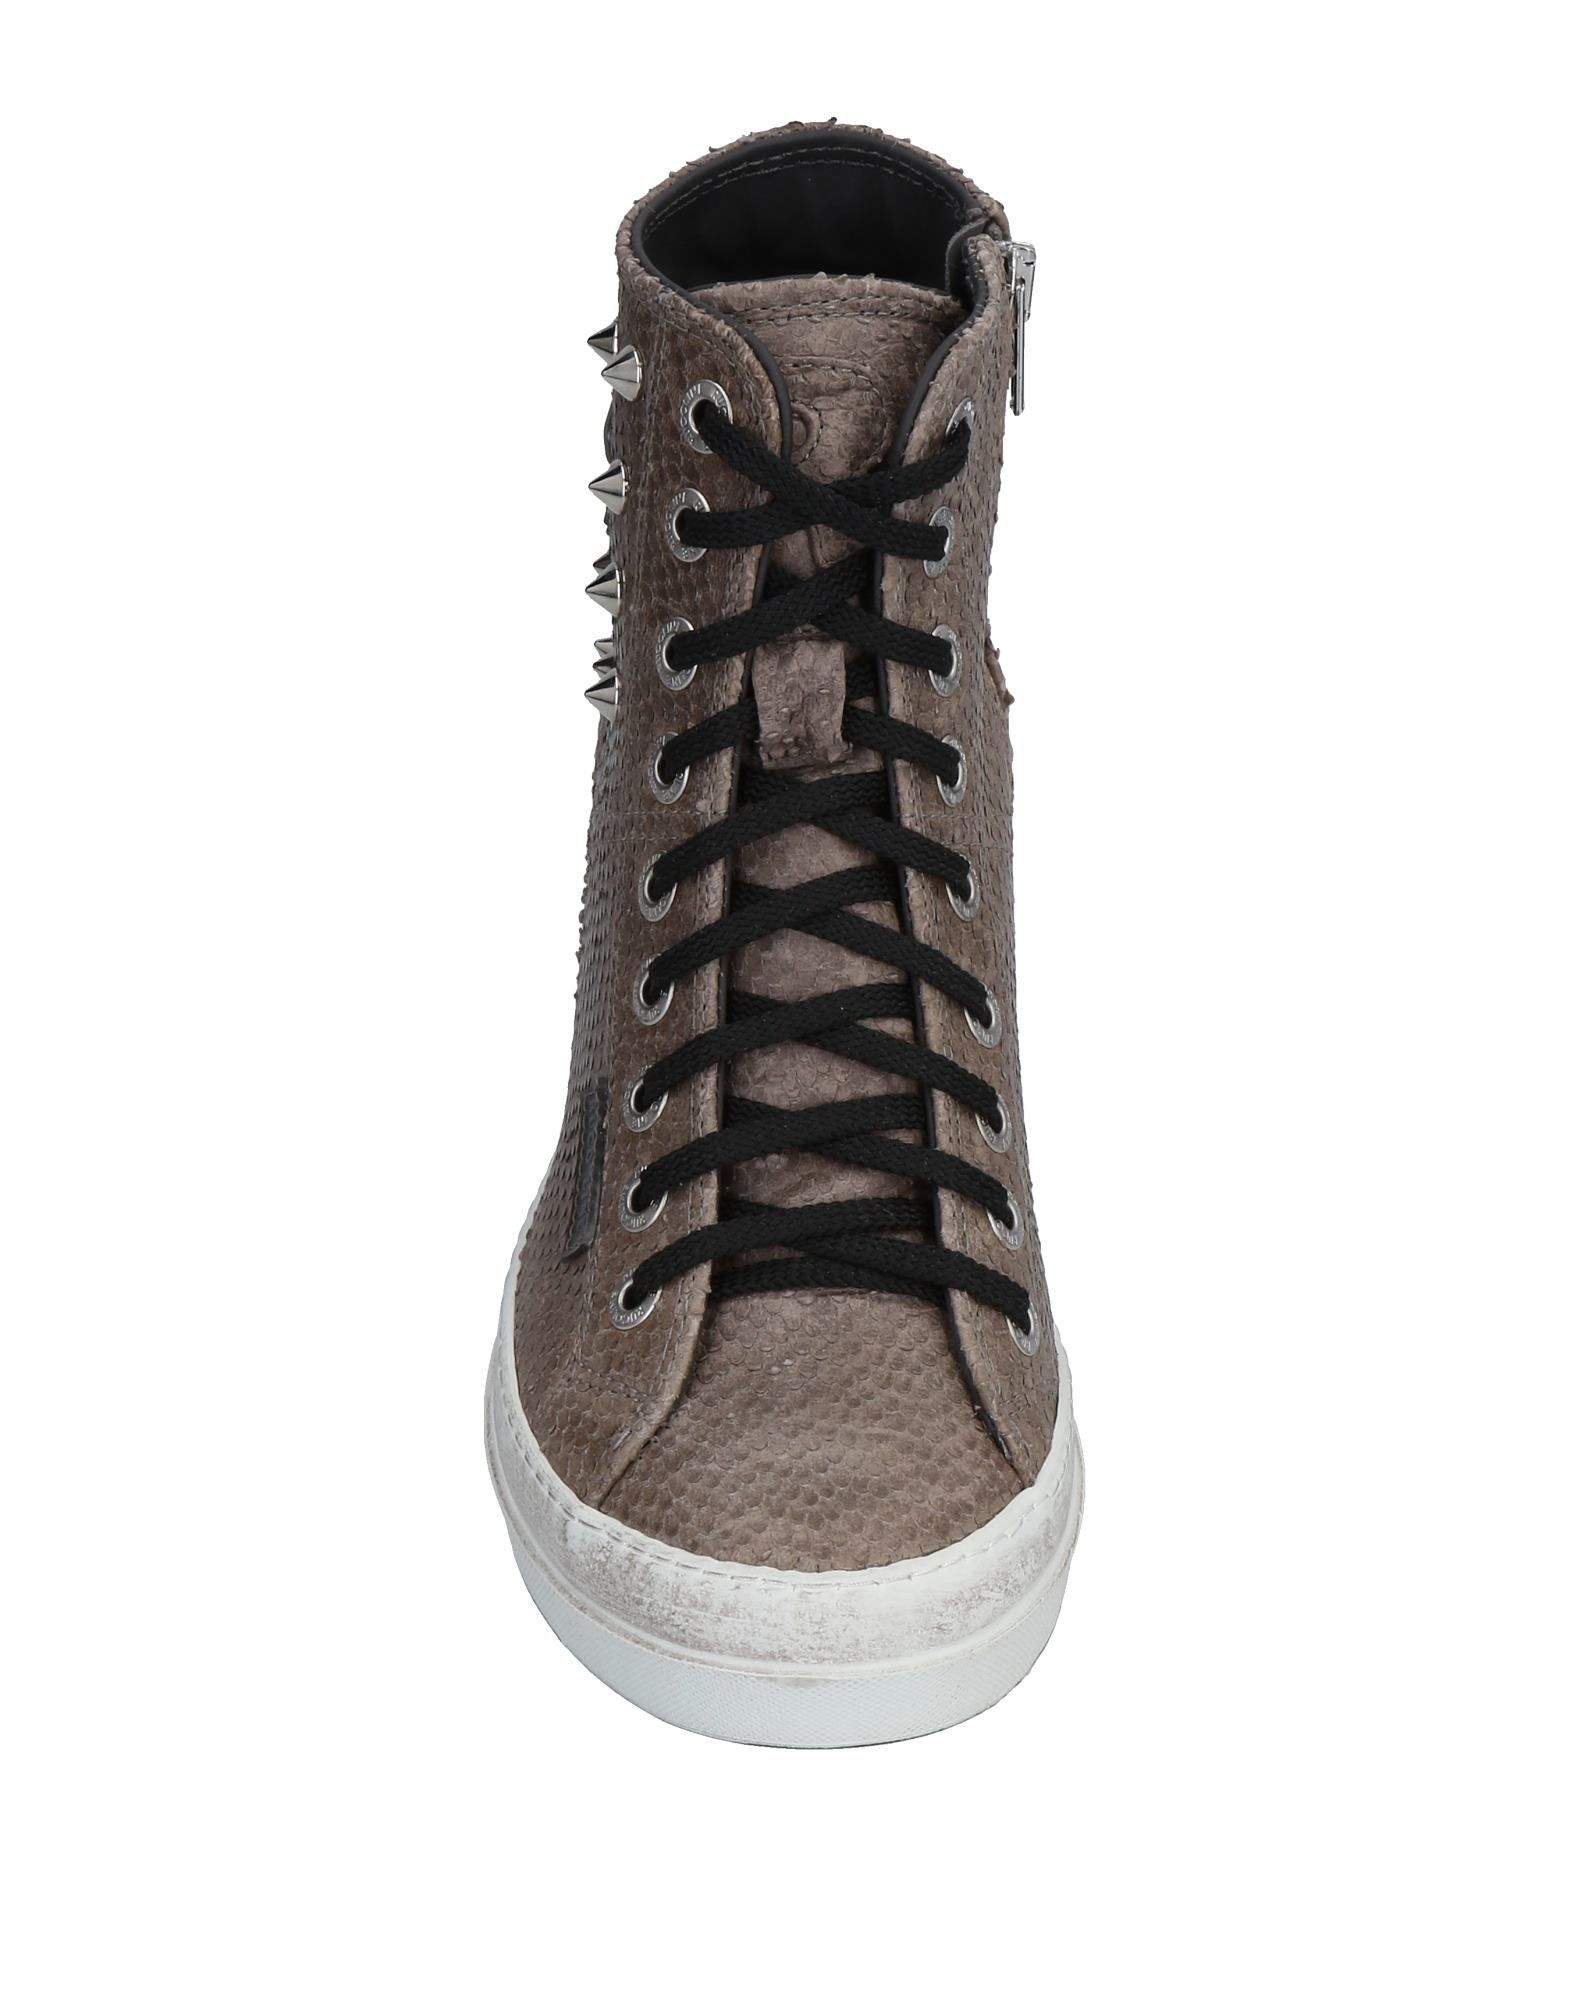 Ruco Line Sneakers Damen strapazierfähige  11223321UOGut aussehende strapazierfähige Damen Schuhe b39bf3